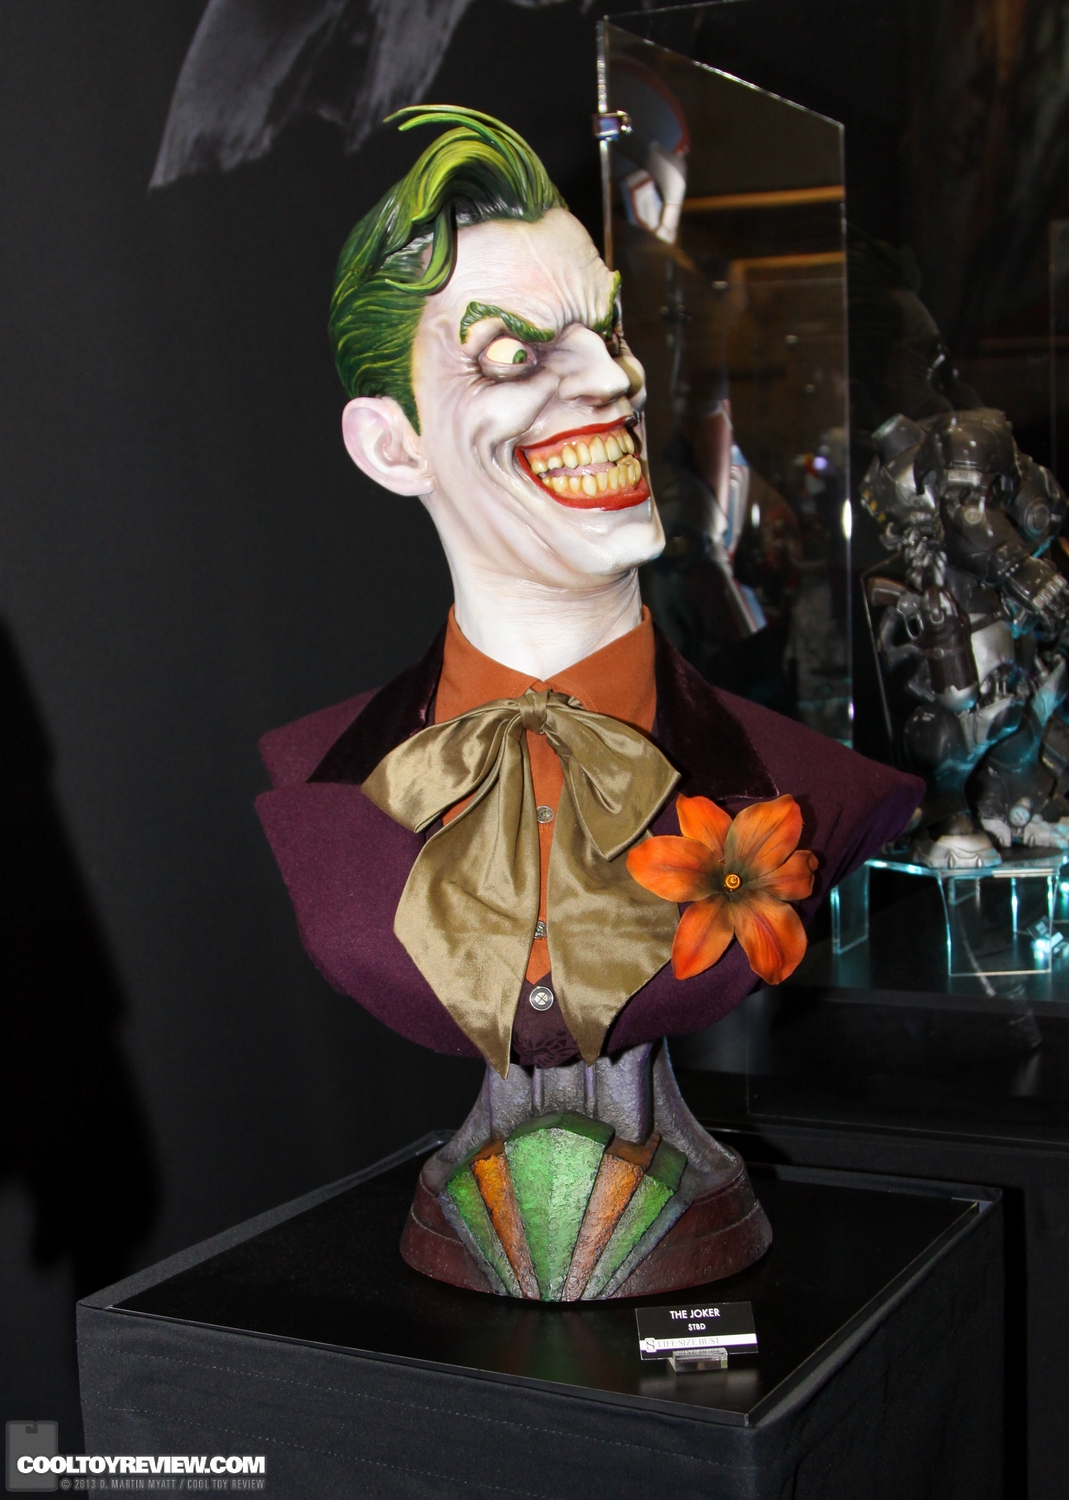 Sideshow Collectibles Joker Bust